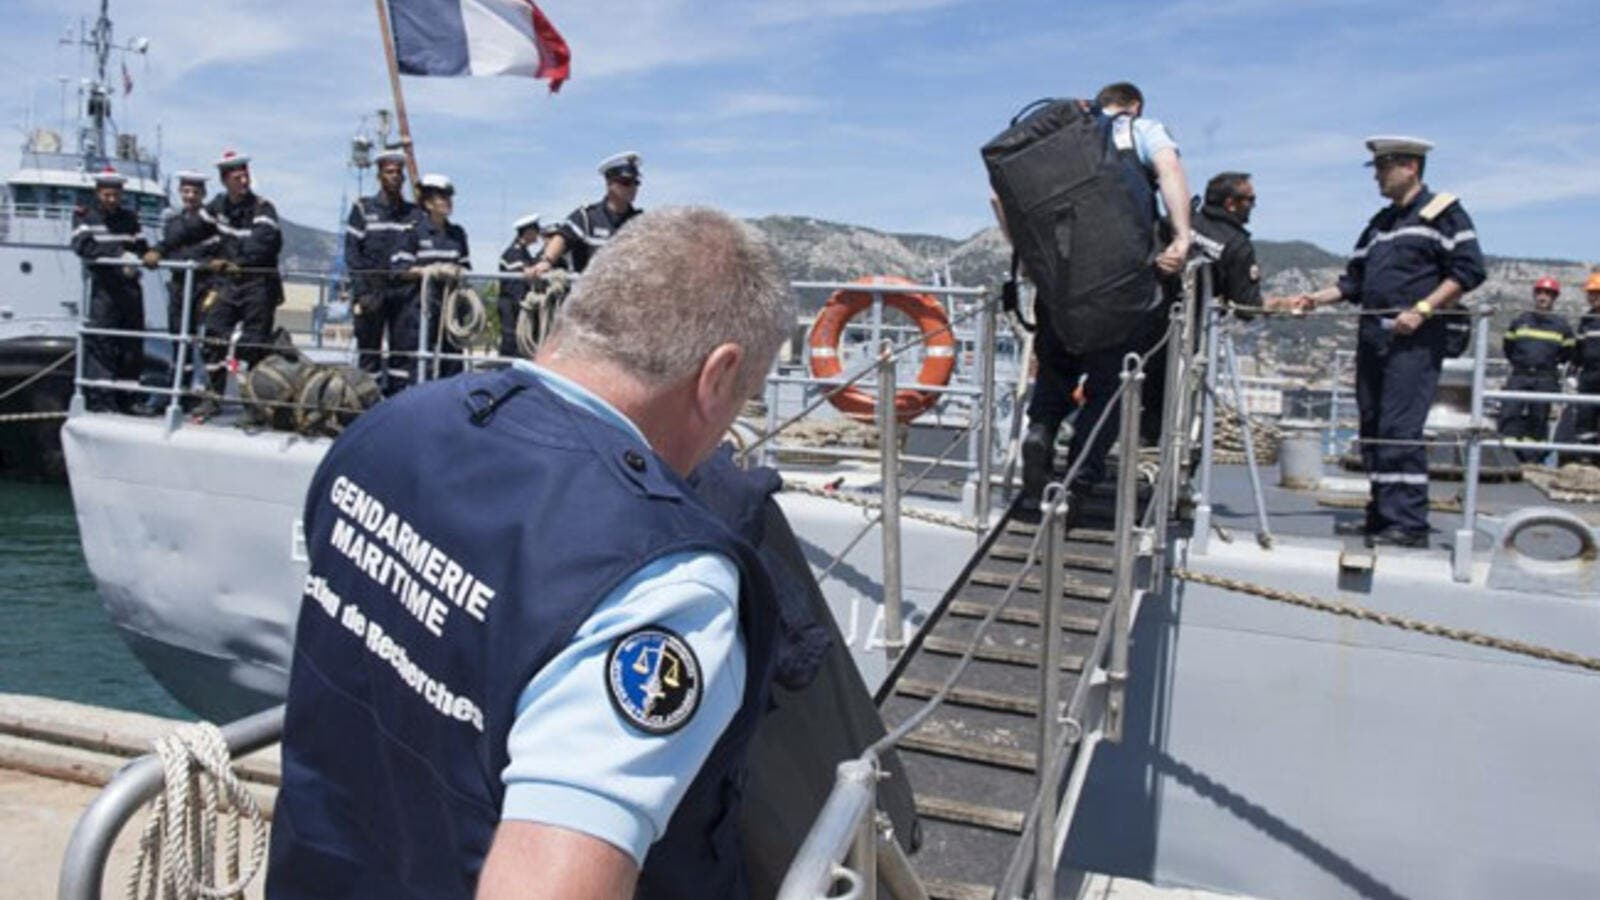 Southeastern France shows French marines embarking to take part in a search operation of the missing EgyptAir plane. (AFP/Stephane Dzioba/Sirpa Marine)